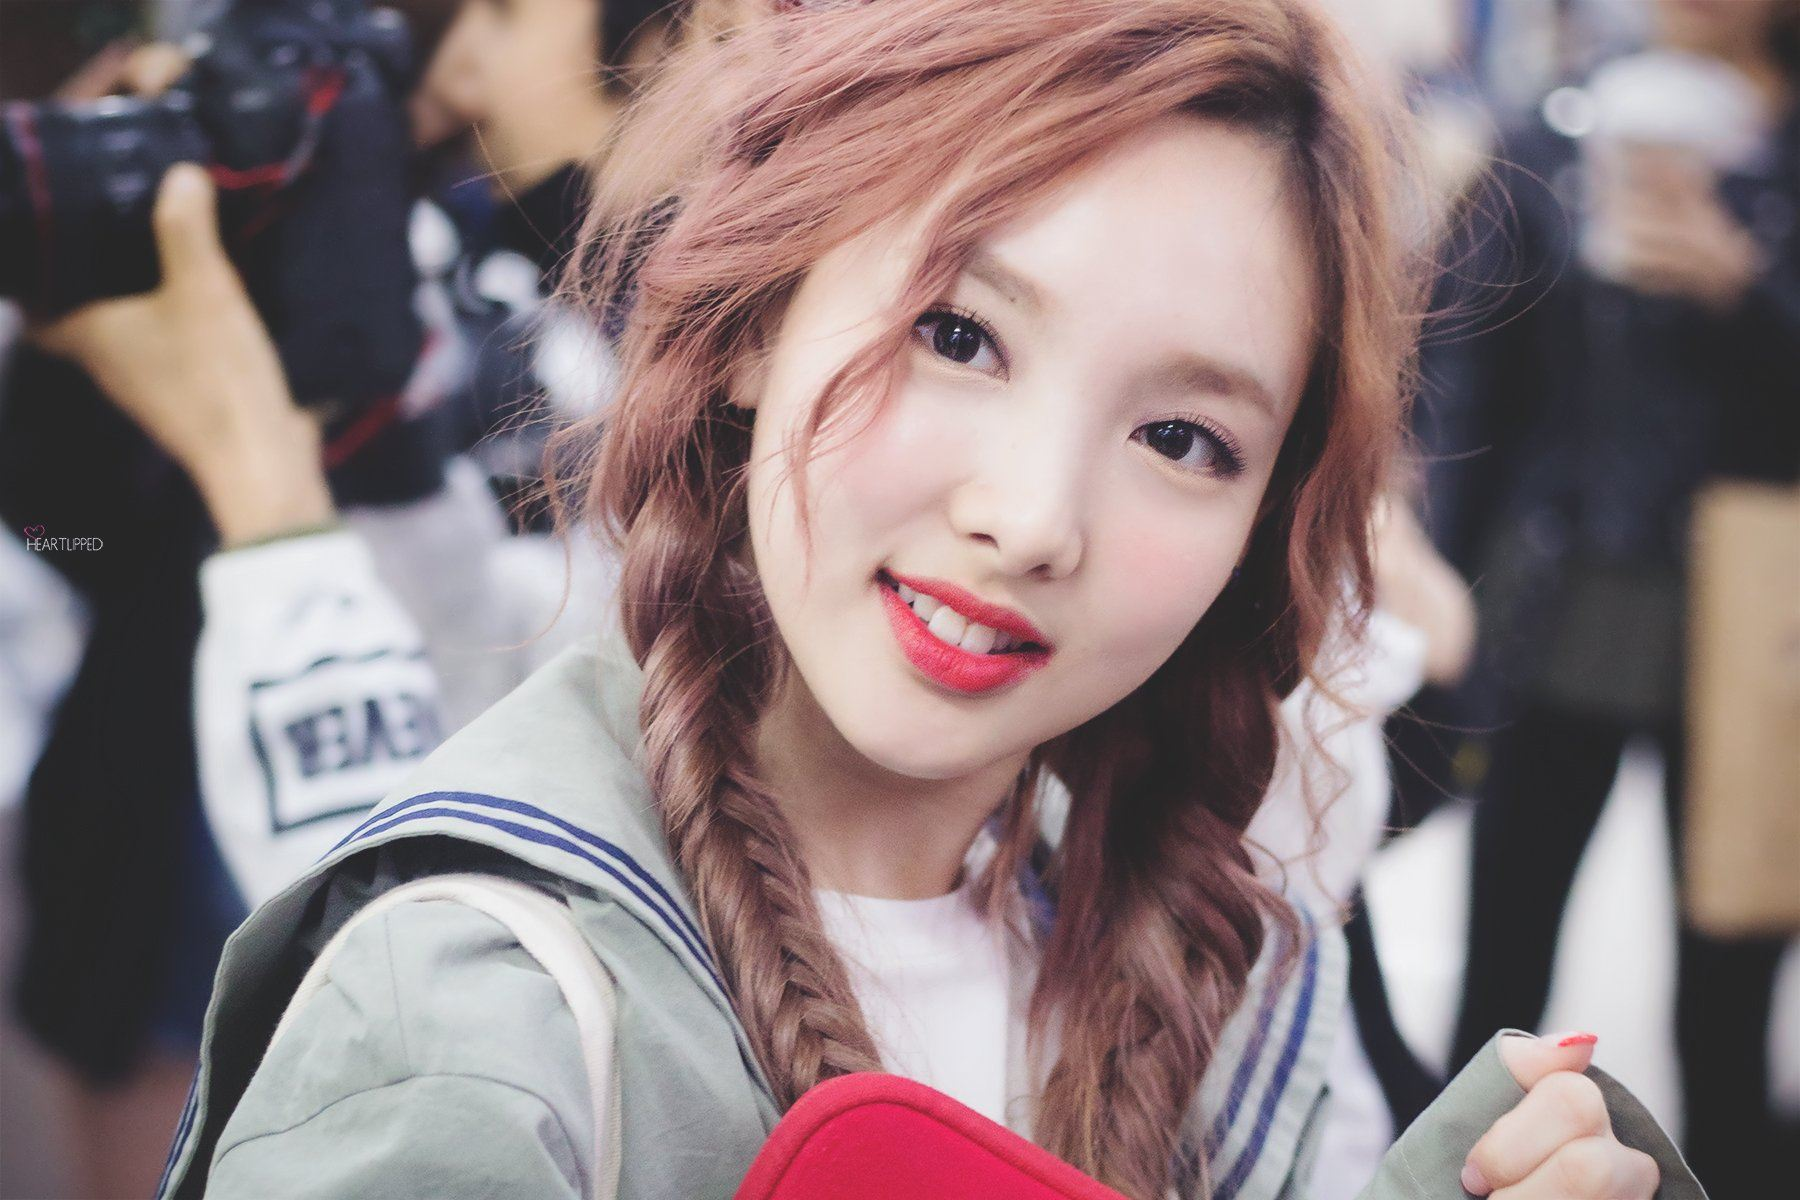 TWICE Nayeon Just Dyed Her Hair Pink, Heres What She Look Like